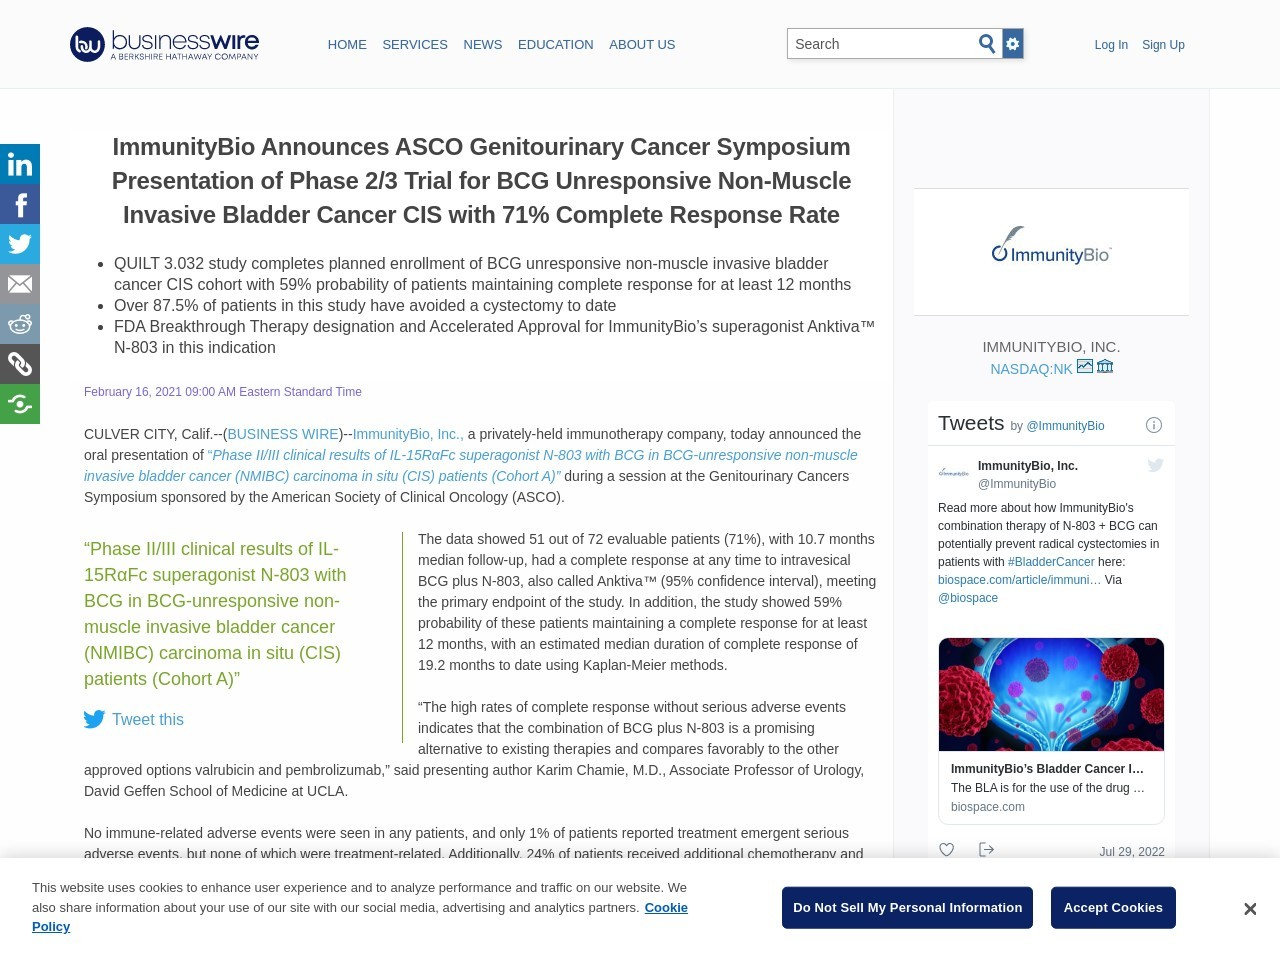 ImmunityBio Announces ASCO Genitourinary Cancer Symposium Presentation of Phase 2/3 Trial for BCG Unresponsive Non-Muscle Invasive Bladder Cancer CIS with 71% Complete Response Rate